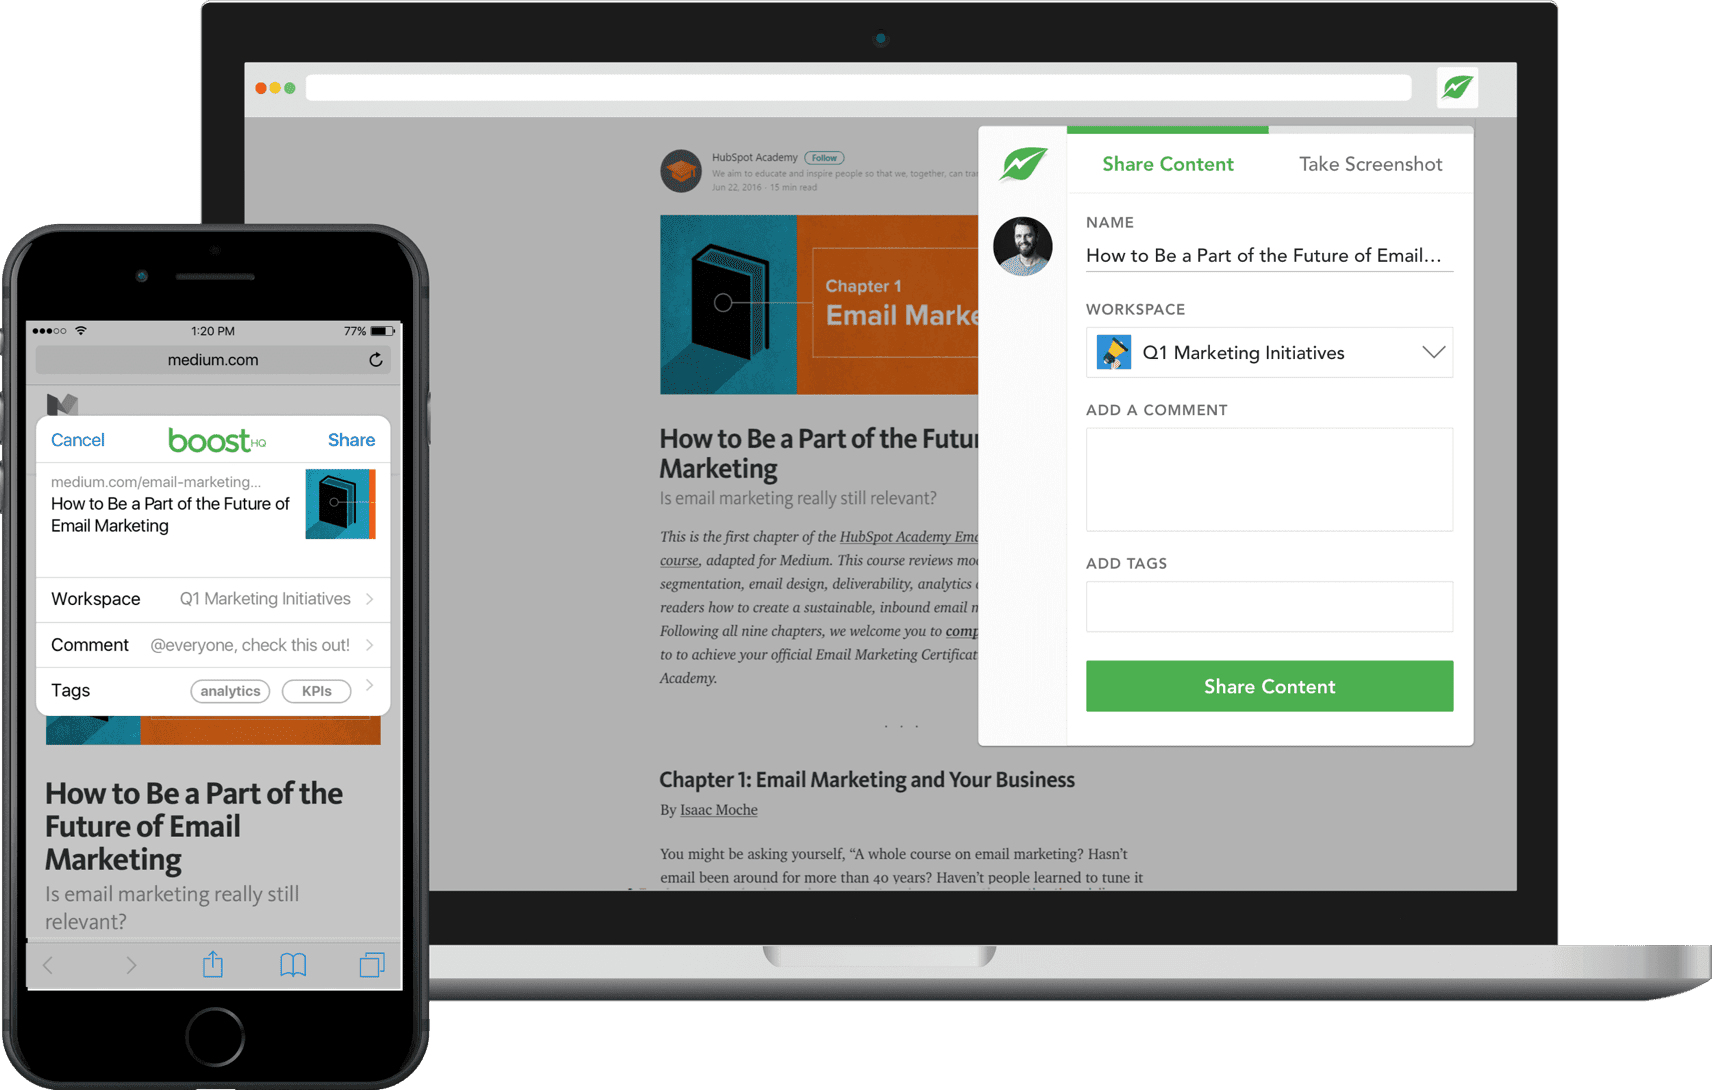 boosthq knowledge sharing tool chrome extension